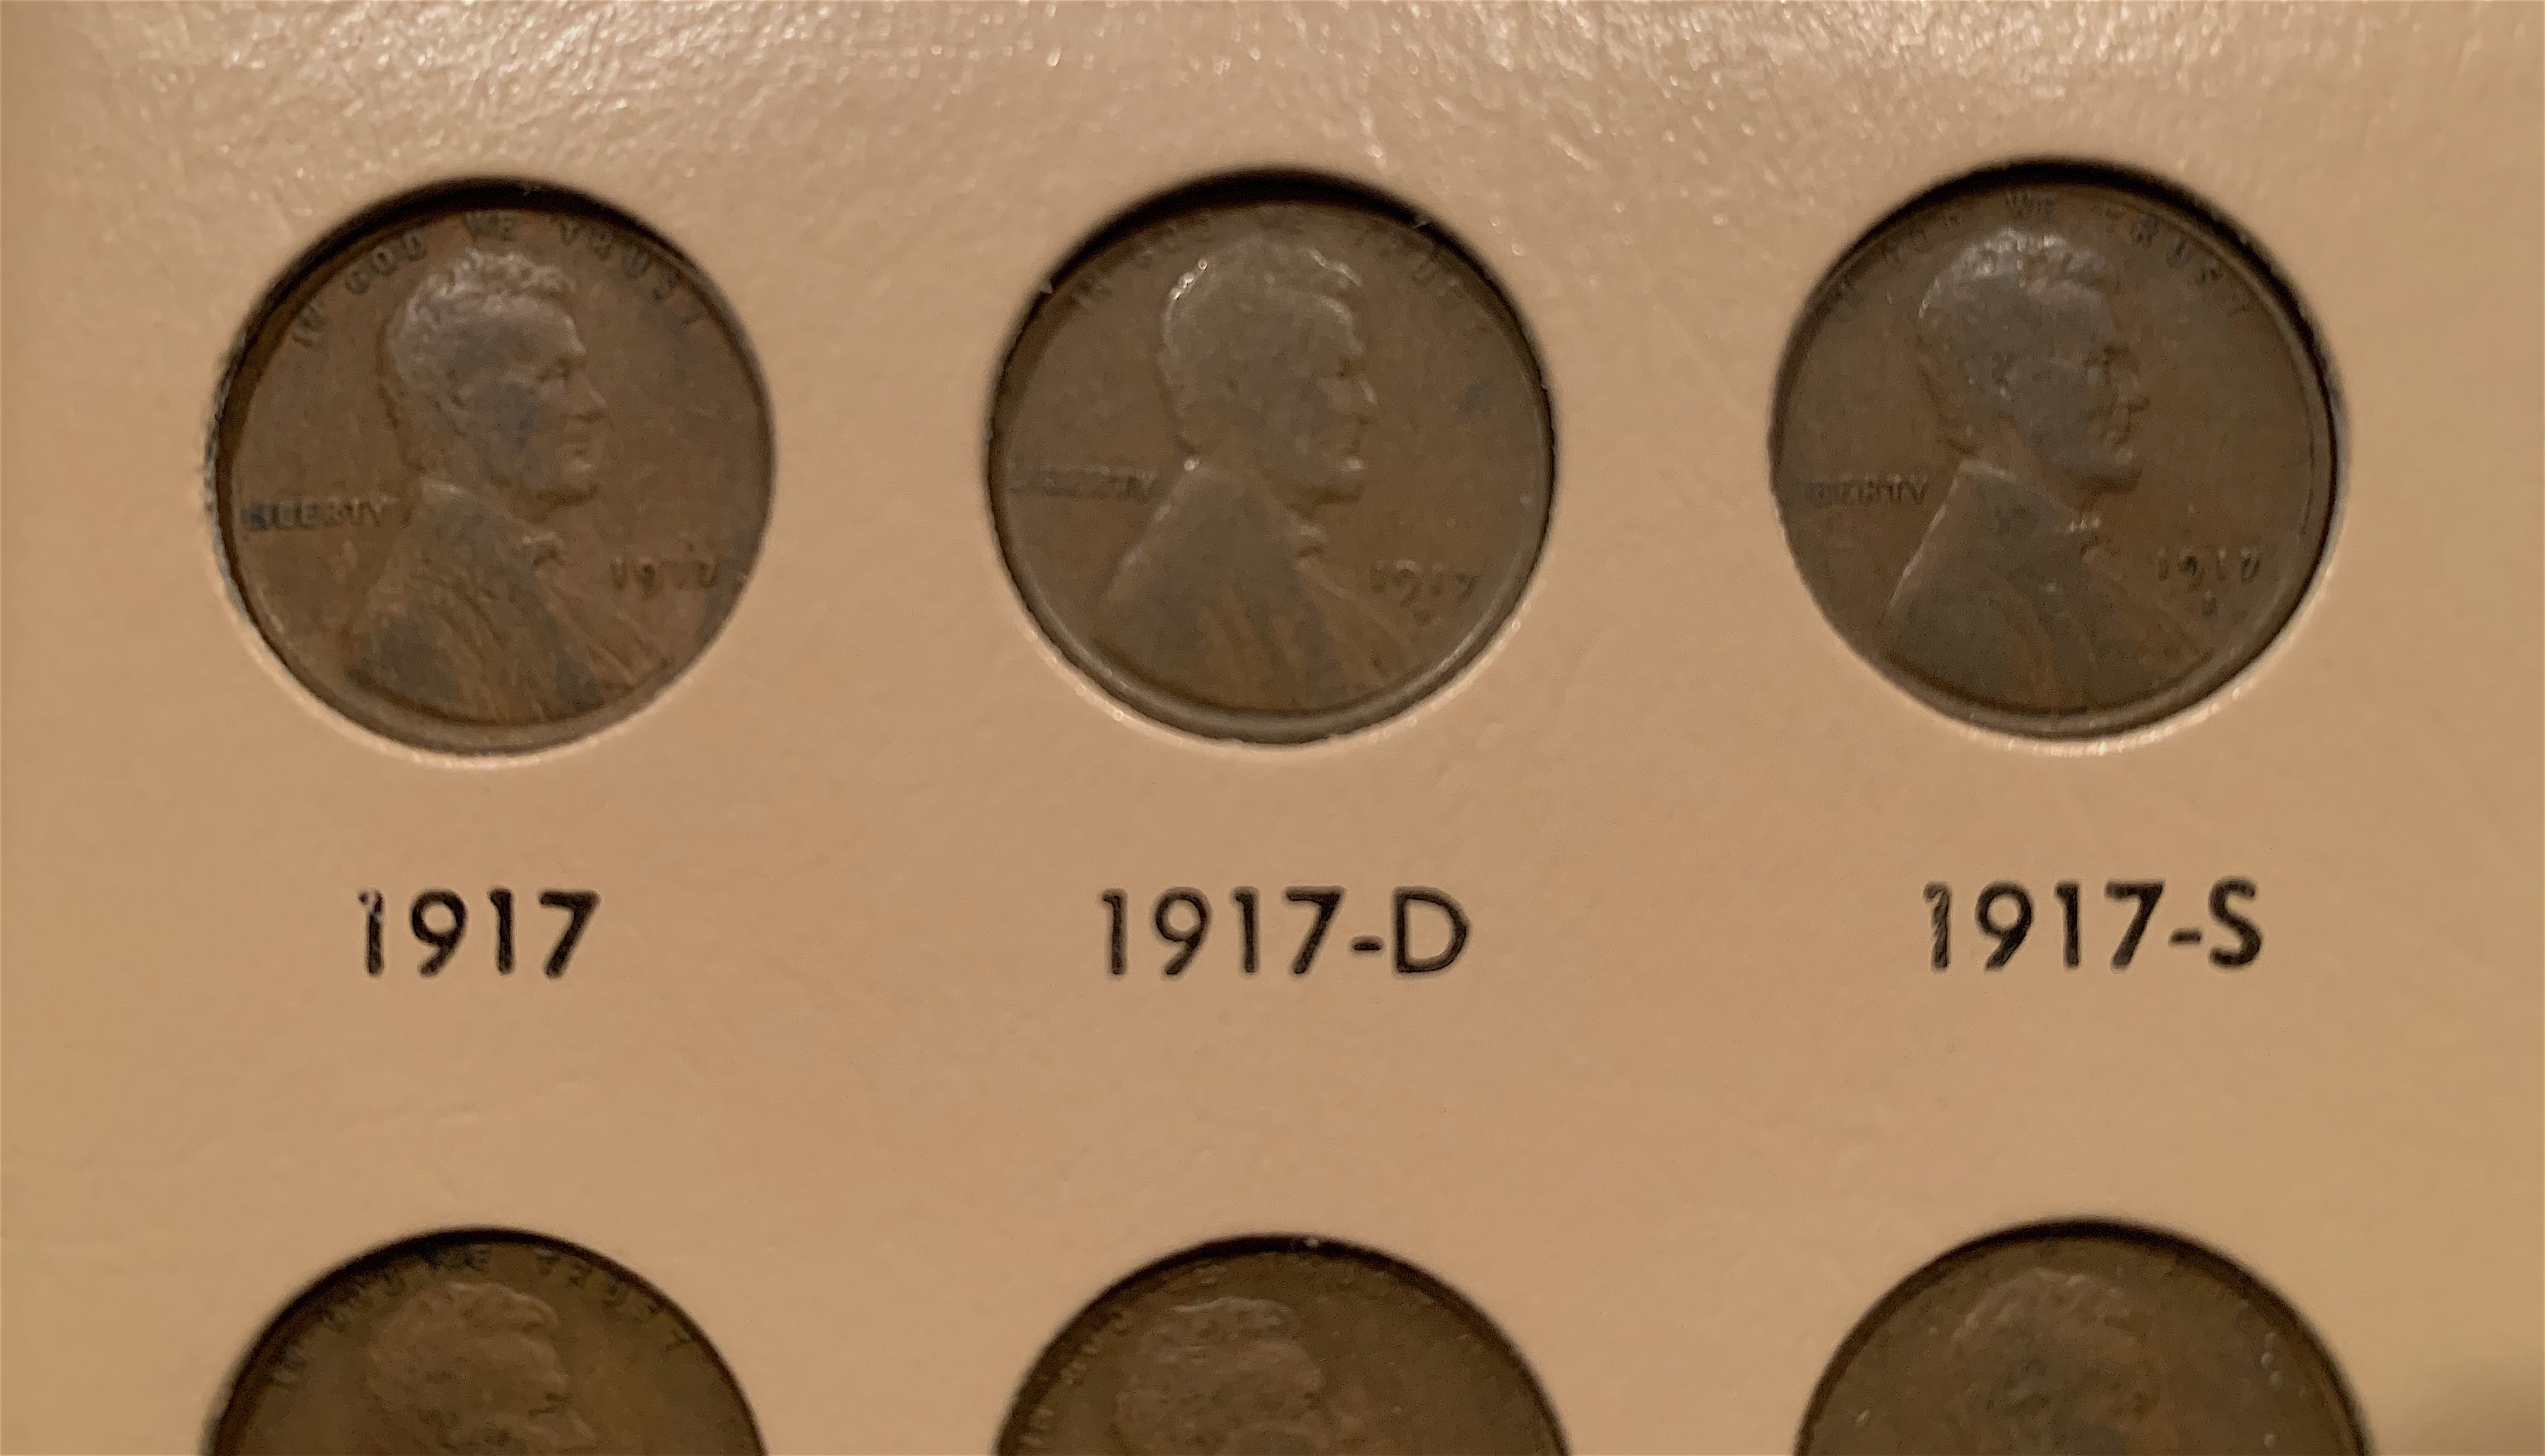 How Much Is A 1917 Penny Worth? Here's The Ultimate 1917 Penny Value